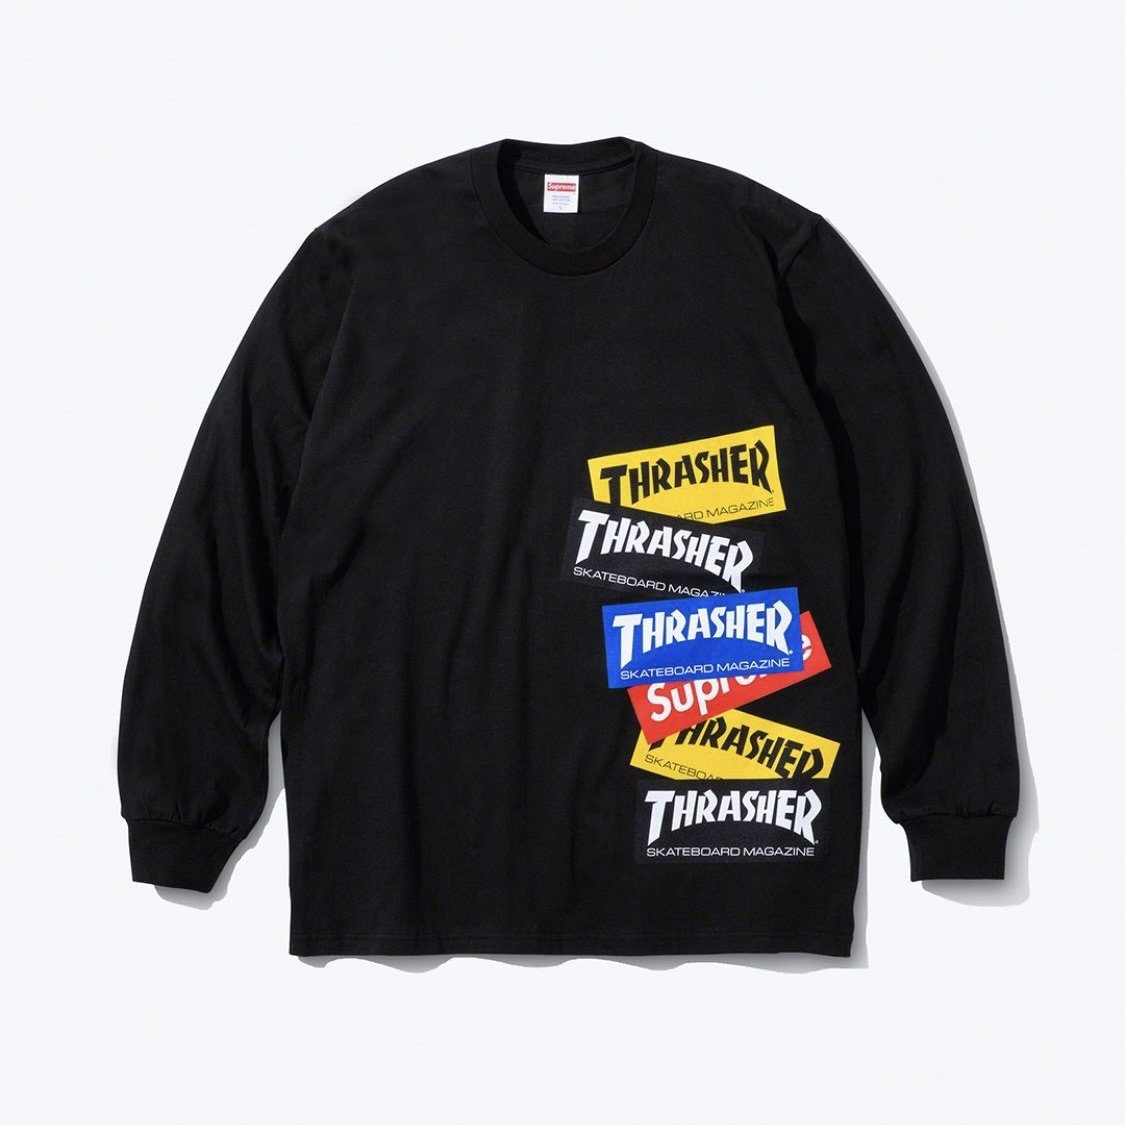 supreme-thrasher-21aw-21fw-collaboration-release-20210925-week5